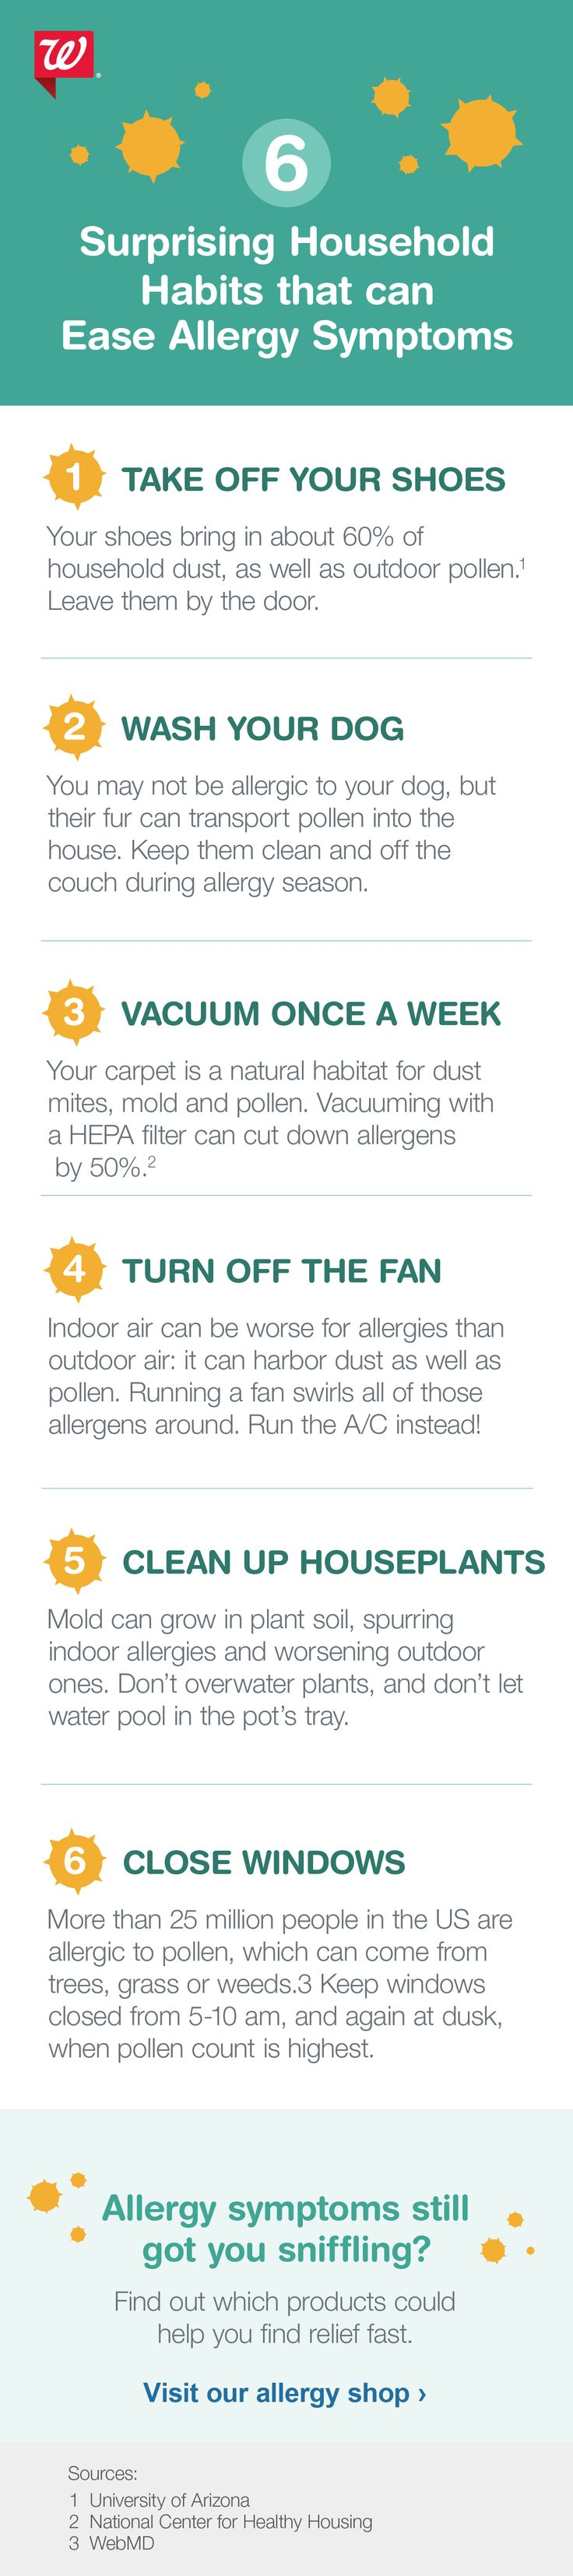 Find out how you can make small changes indoors to help ease outdoor allergy symptoms.